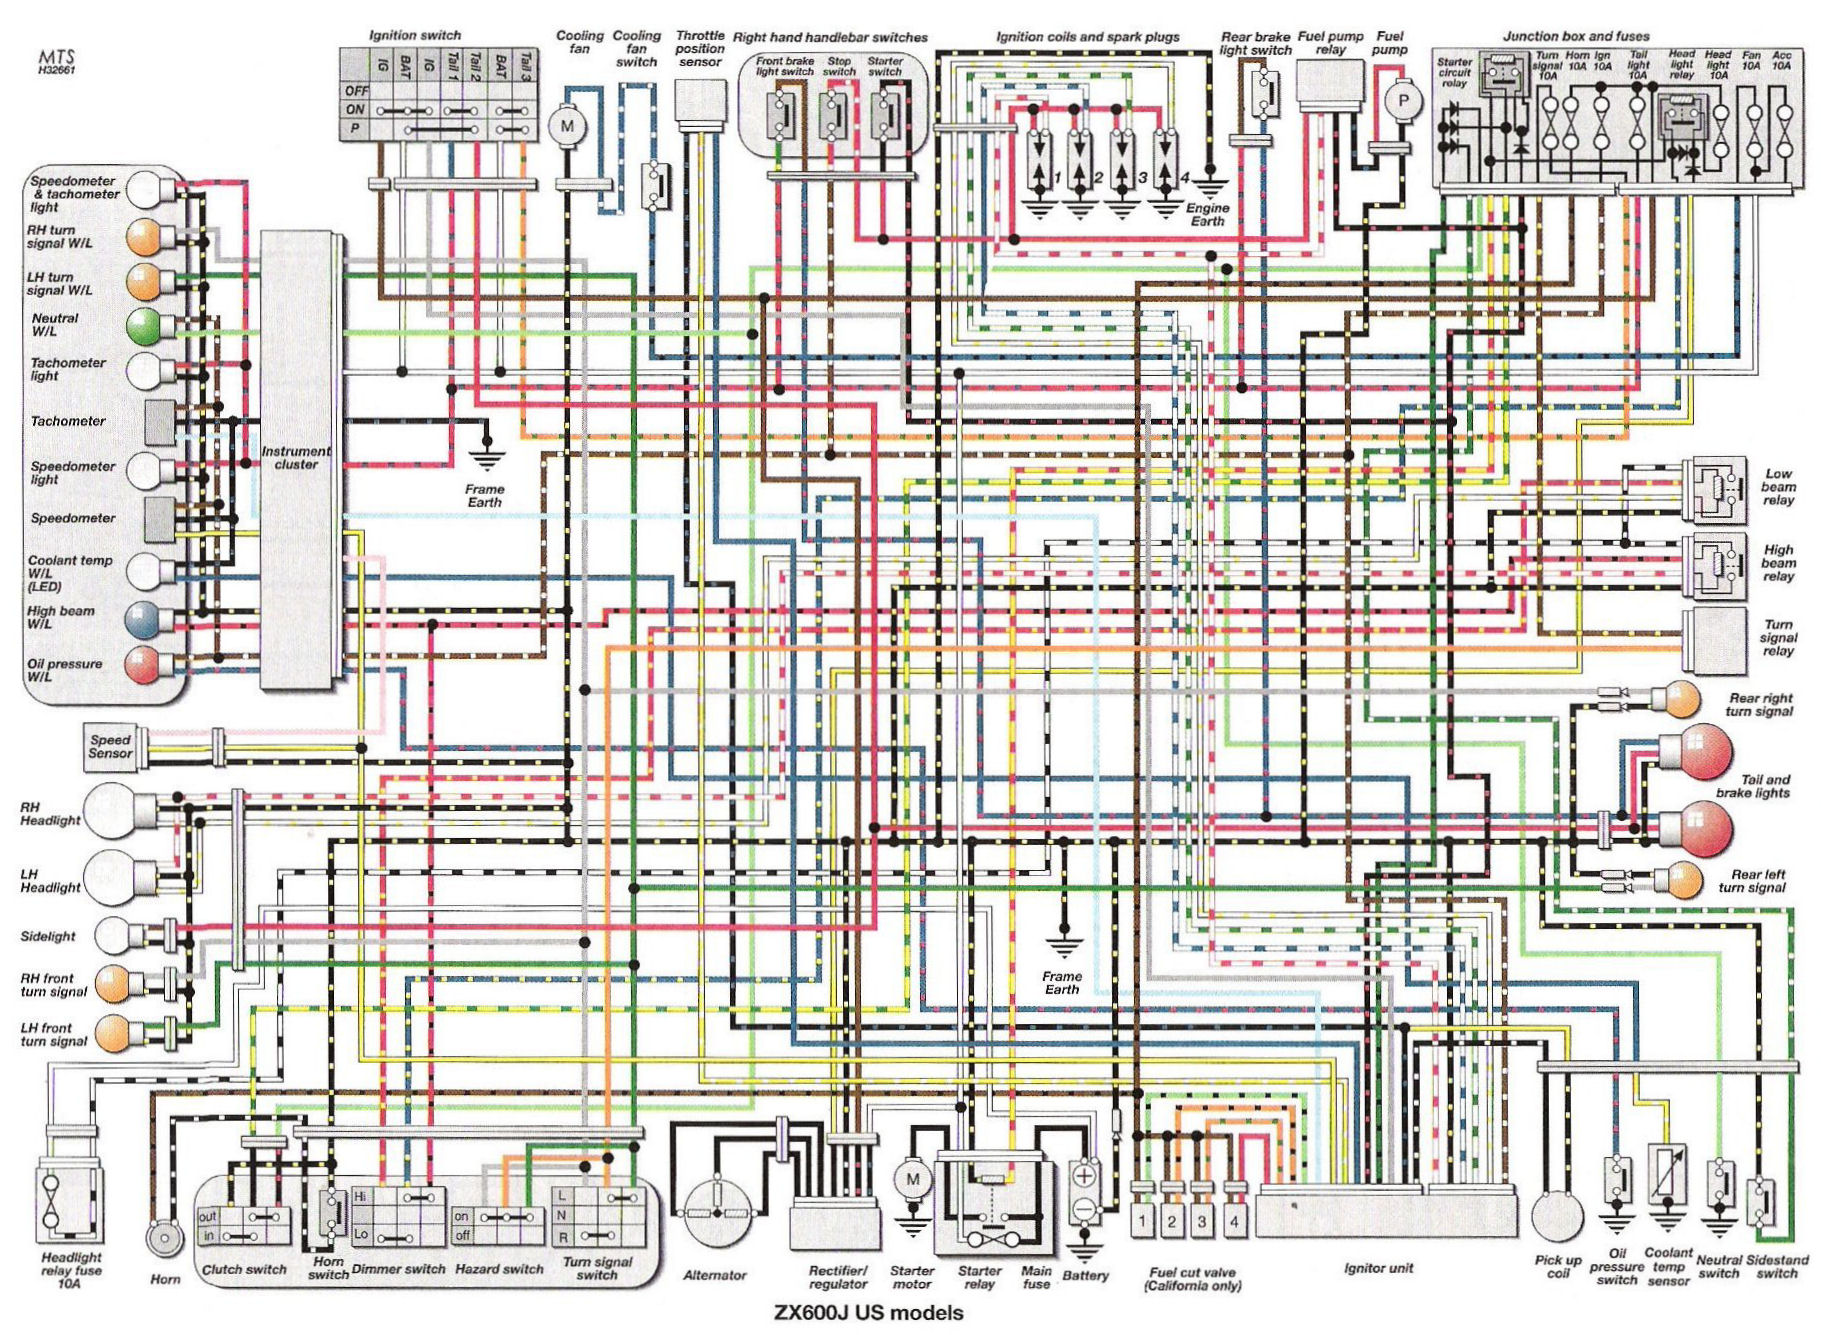 diagram] mahindra tractor wiring diagram alfa romeo gt diagrams full  version hd quality gt diagrams - sightdiagram.pachuka.it  diagram database - pachuka.it